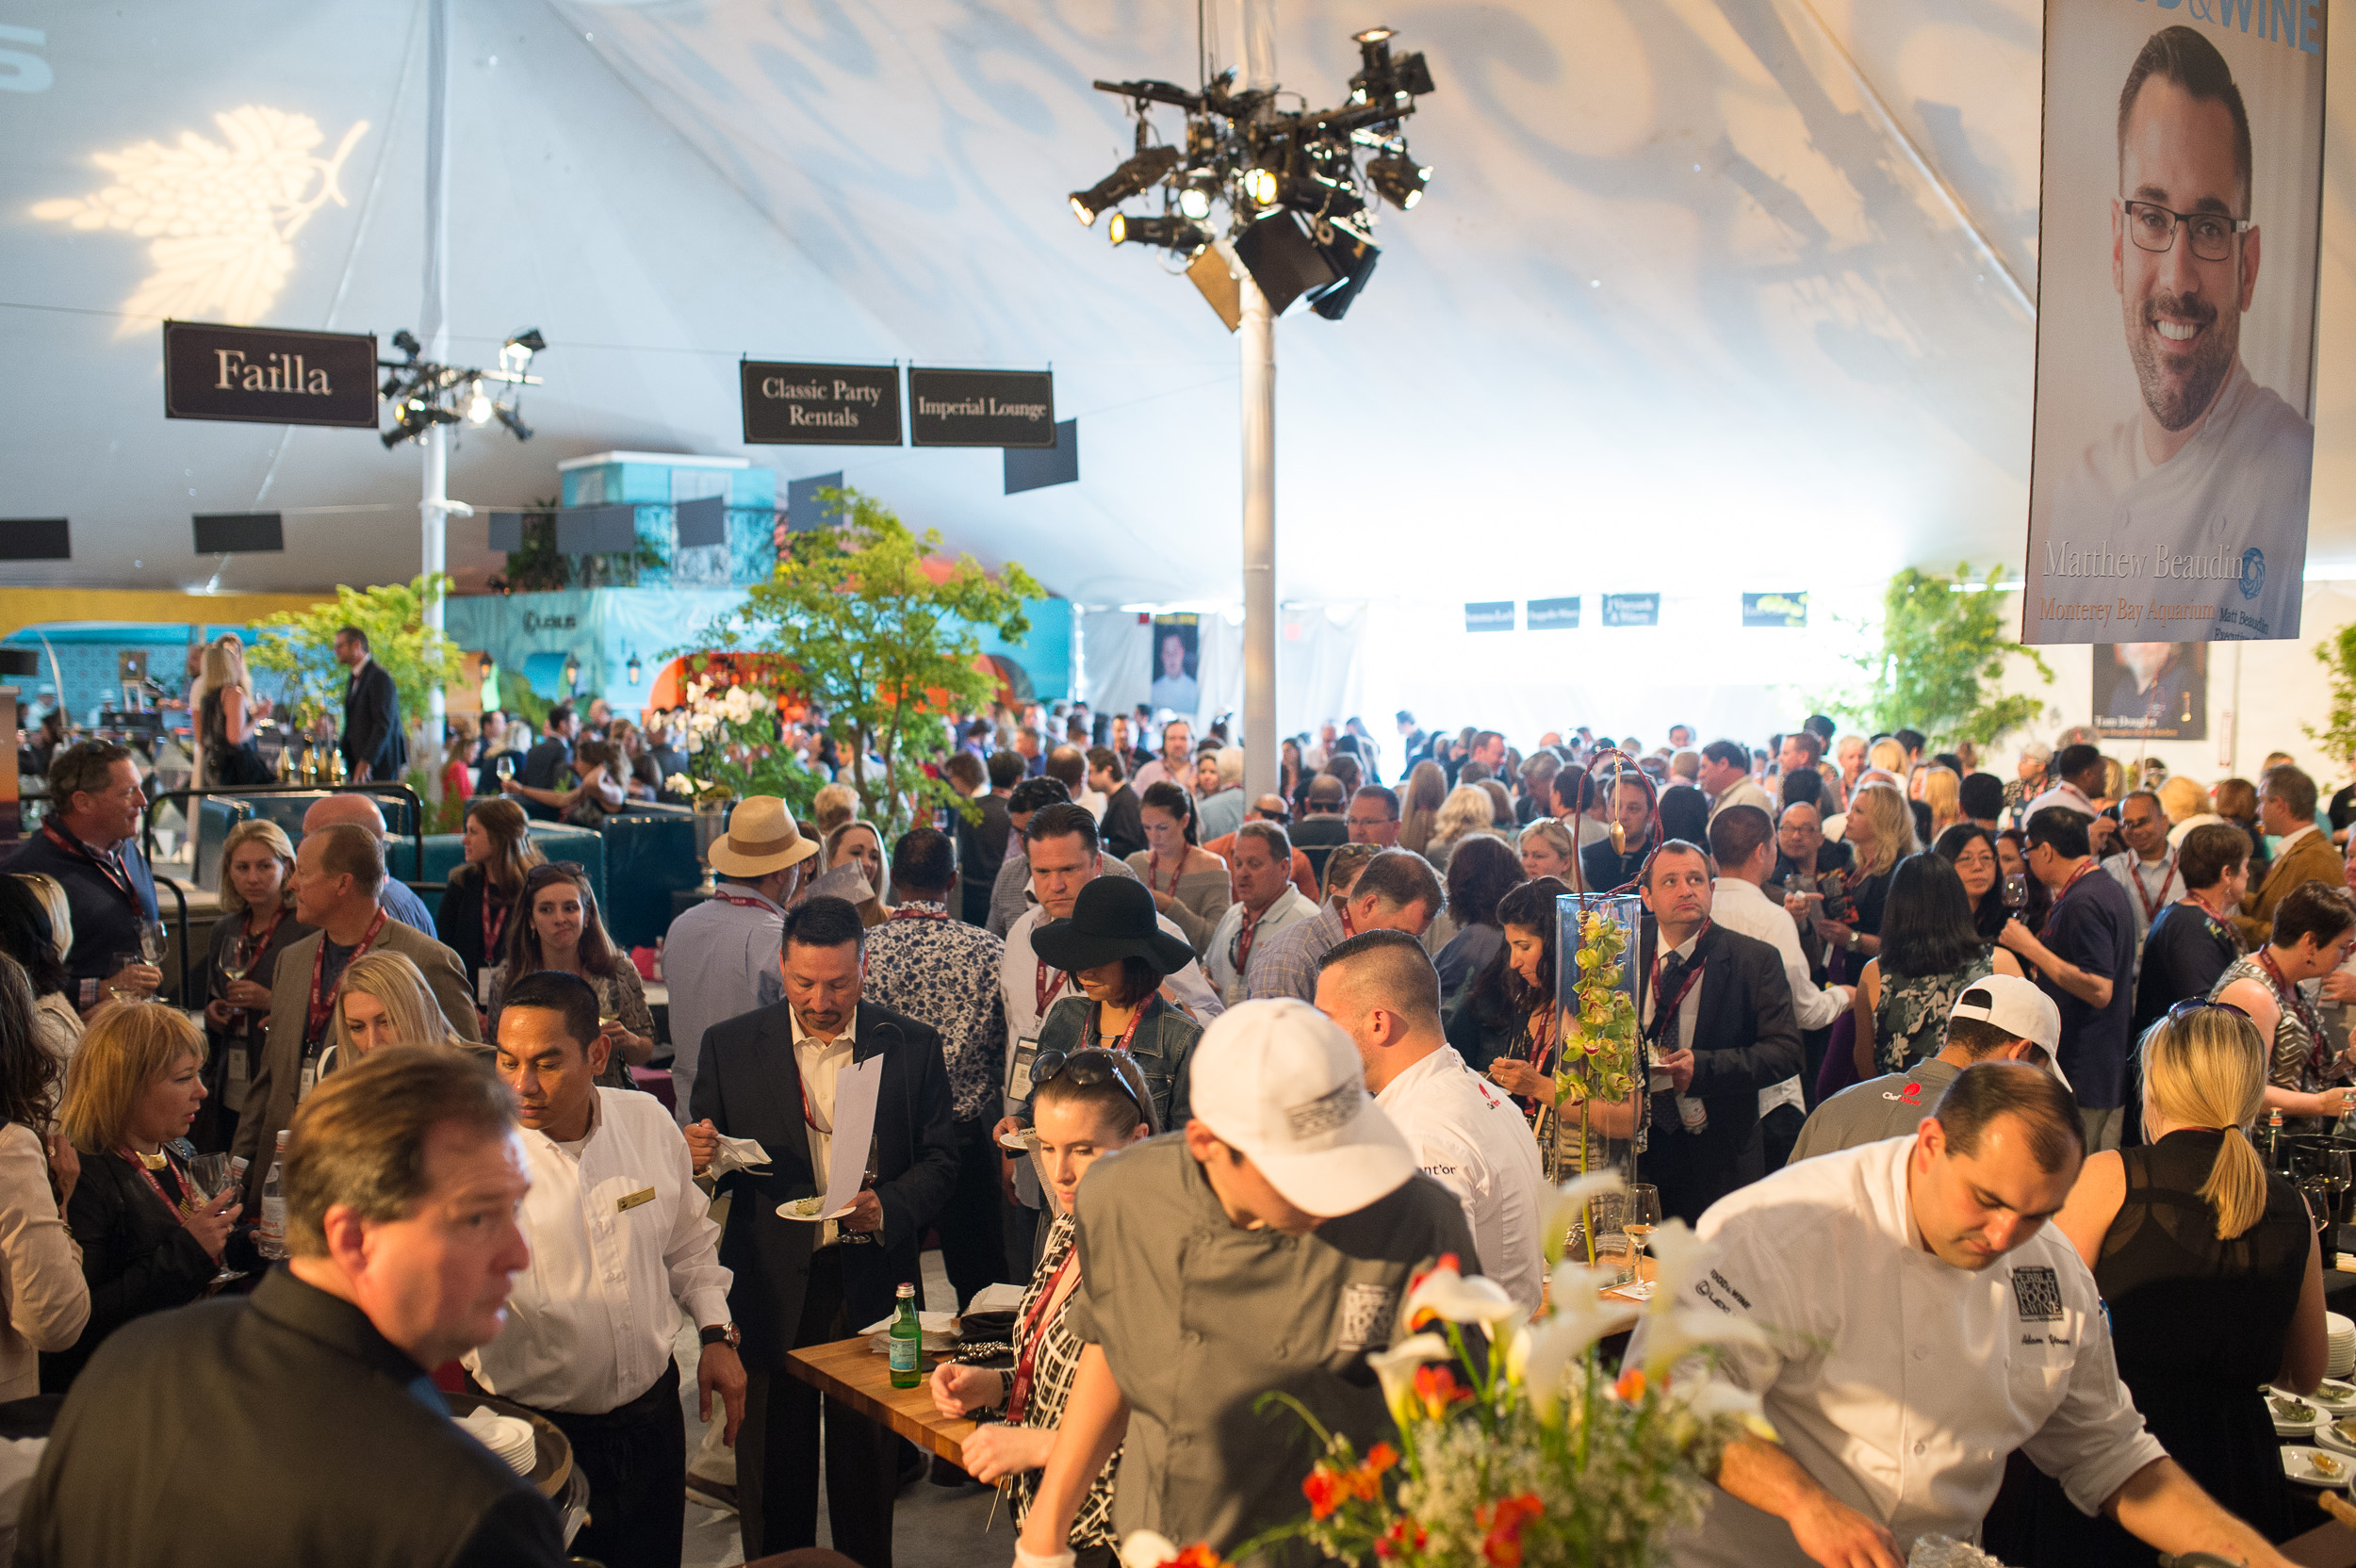 Pebble Beach Food and Wine Grand Tatsting